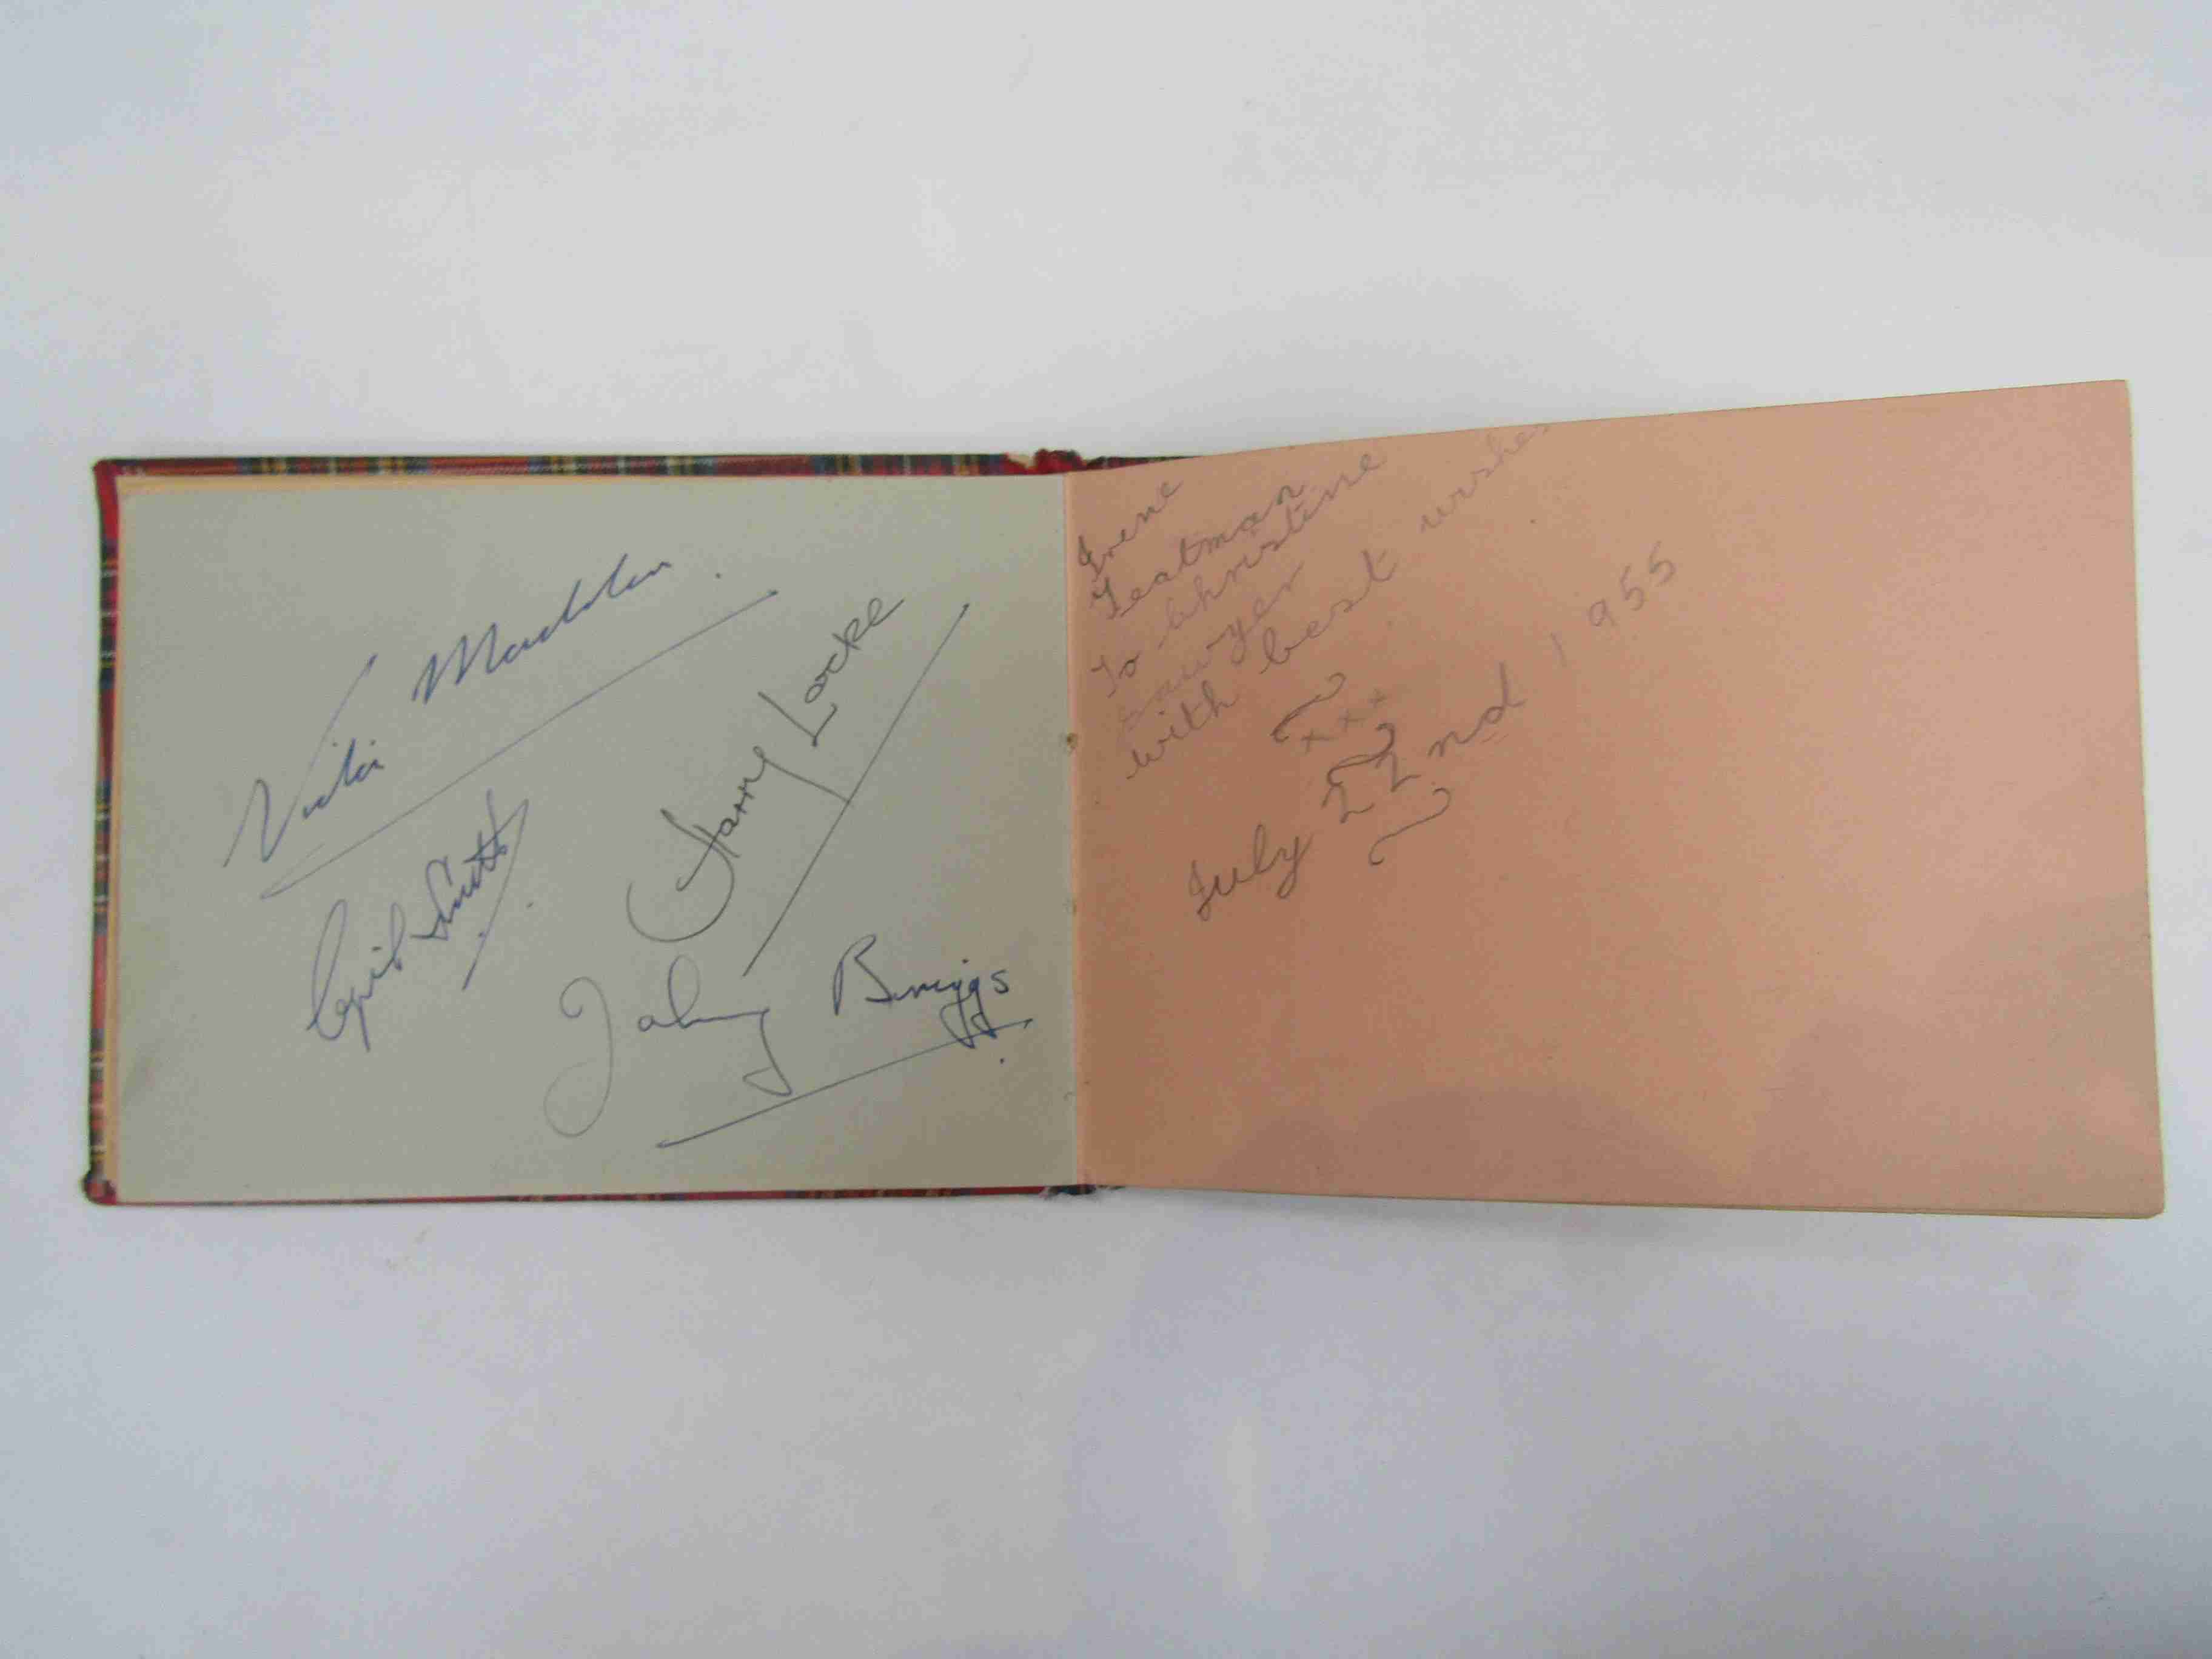 Two 1950s/60s autograph books containing autographs by Benny Hill, Honor Blackman, Barbara Shelley, - Image 12 of 34